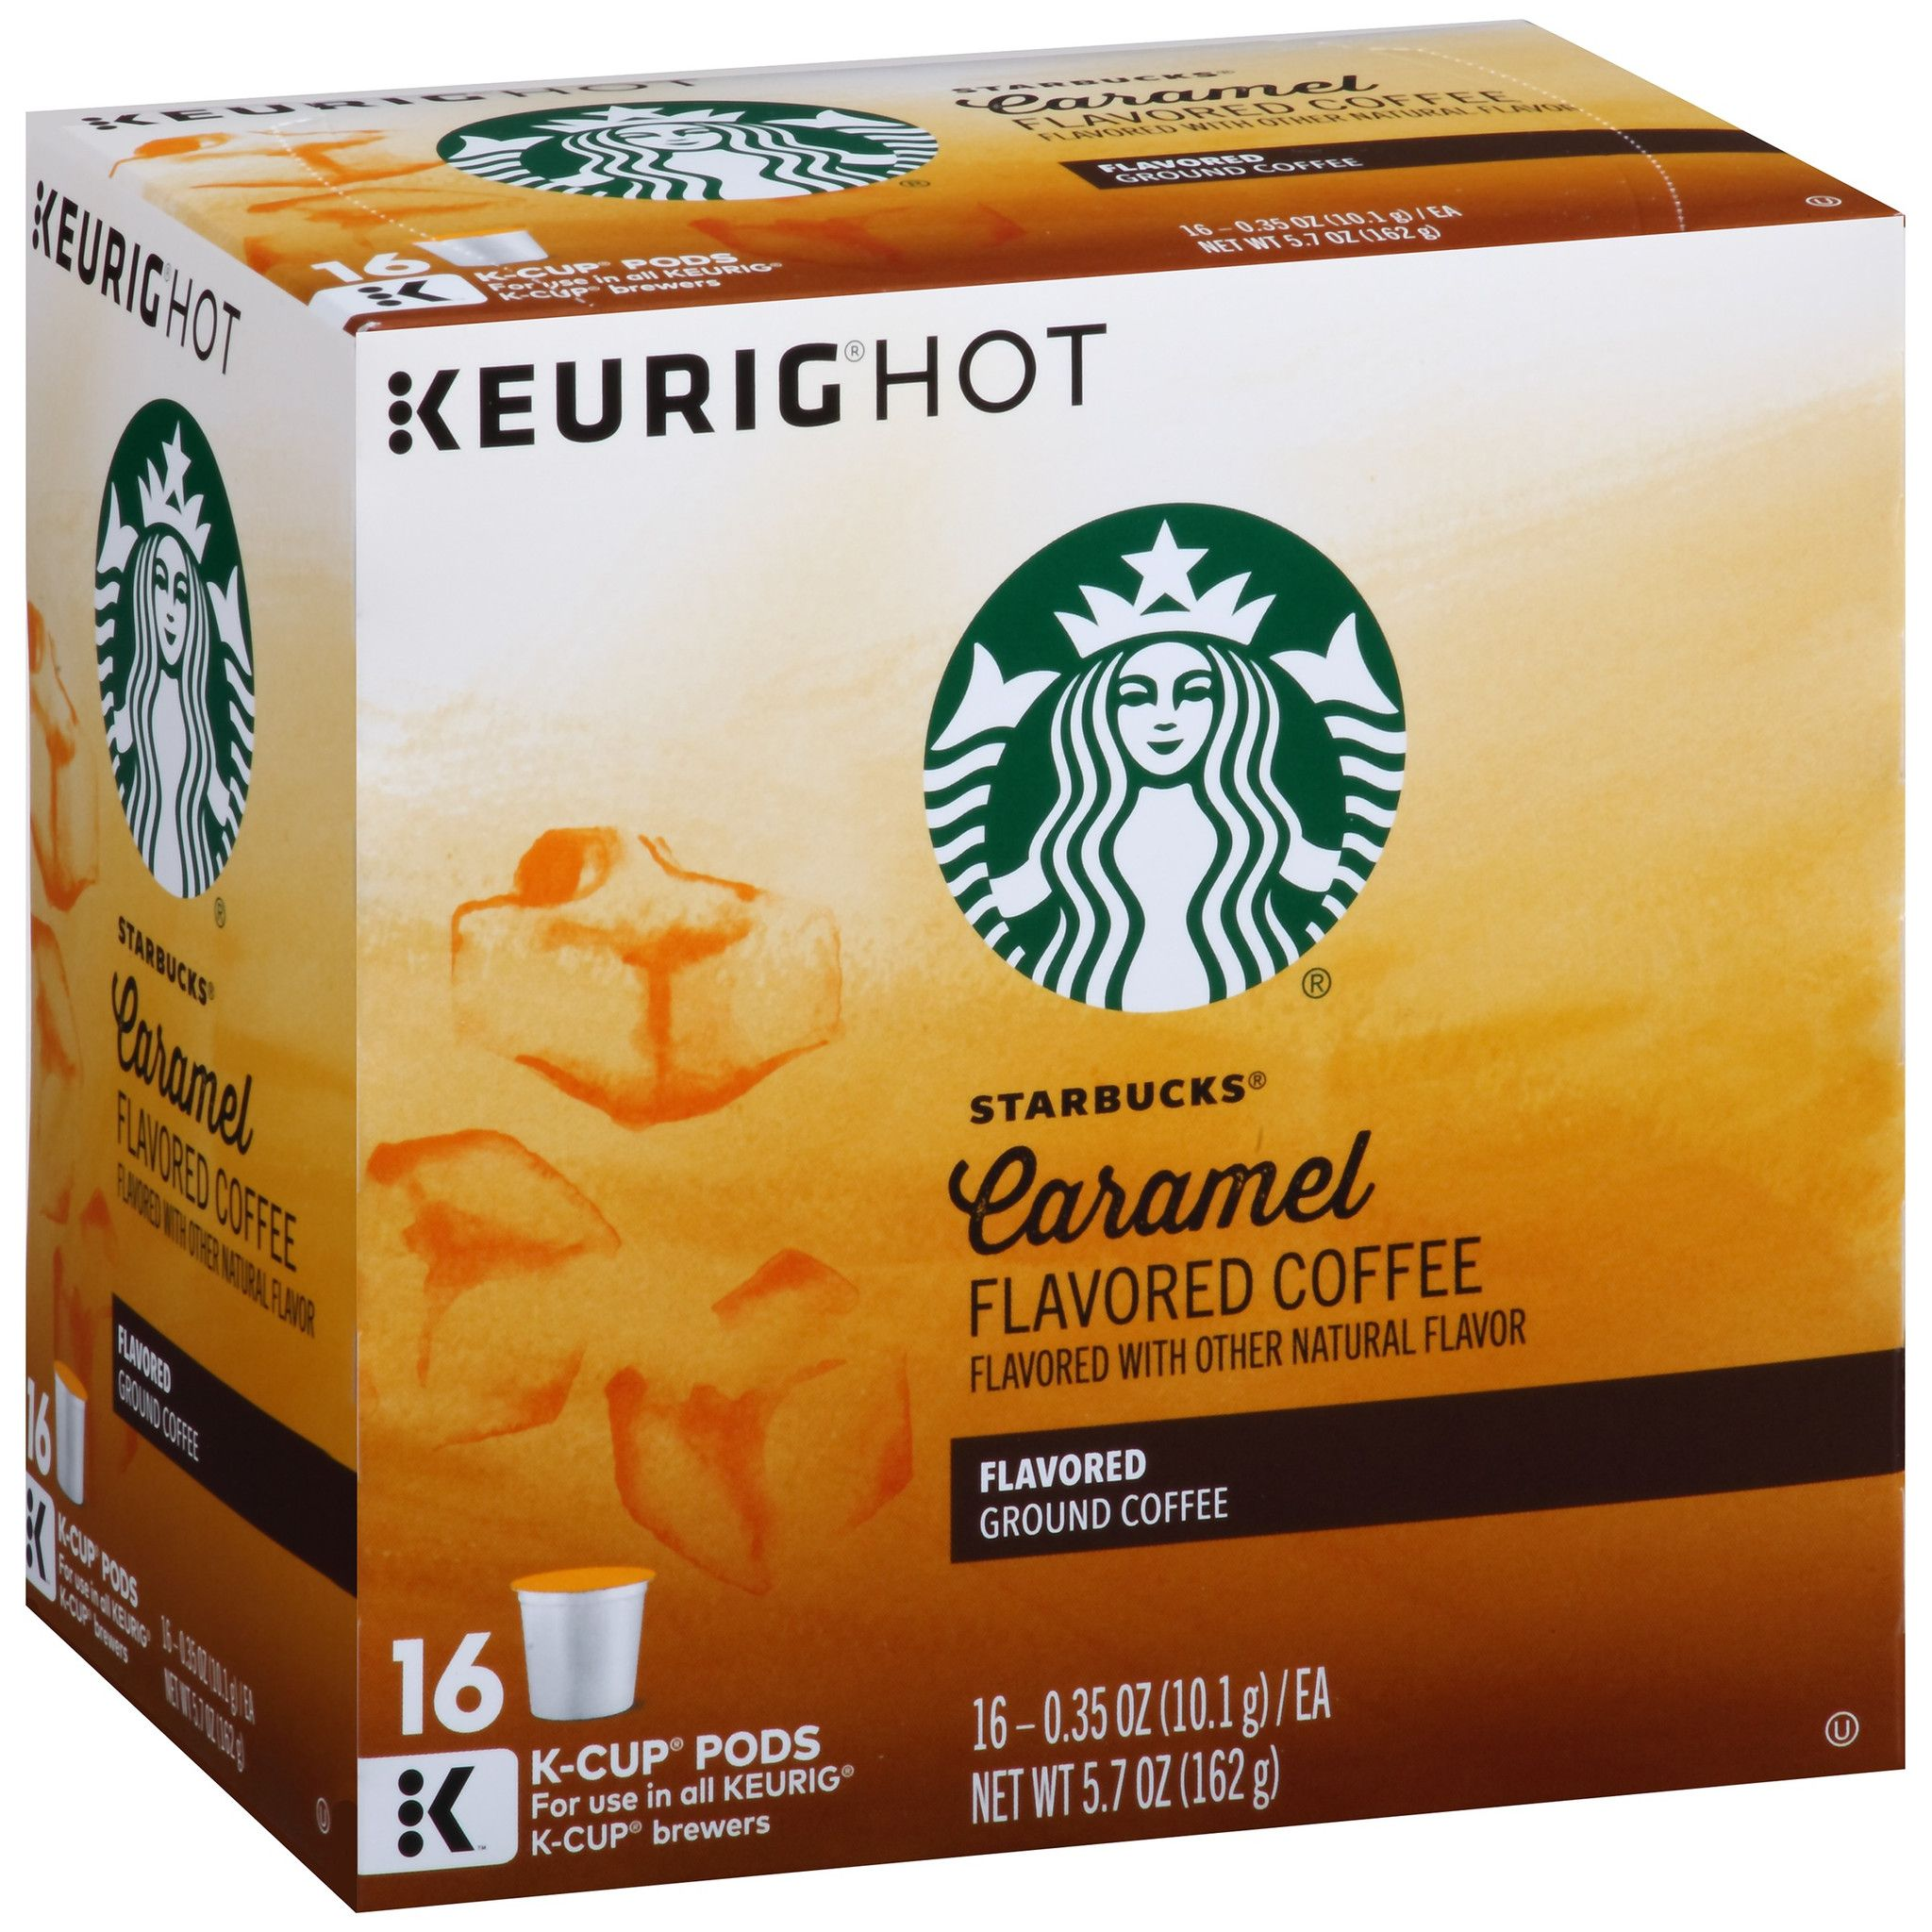 Starbucks® Caramel Flavored Coffee KCup® Pods 16 ct Box